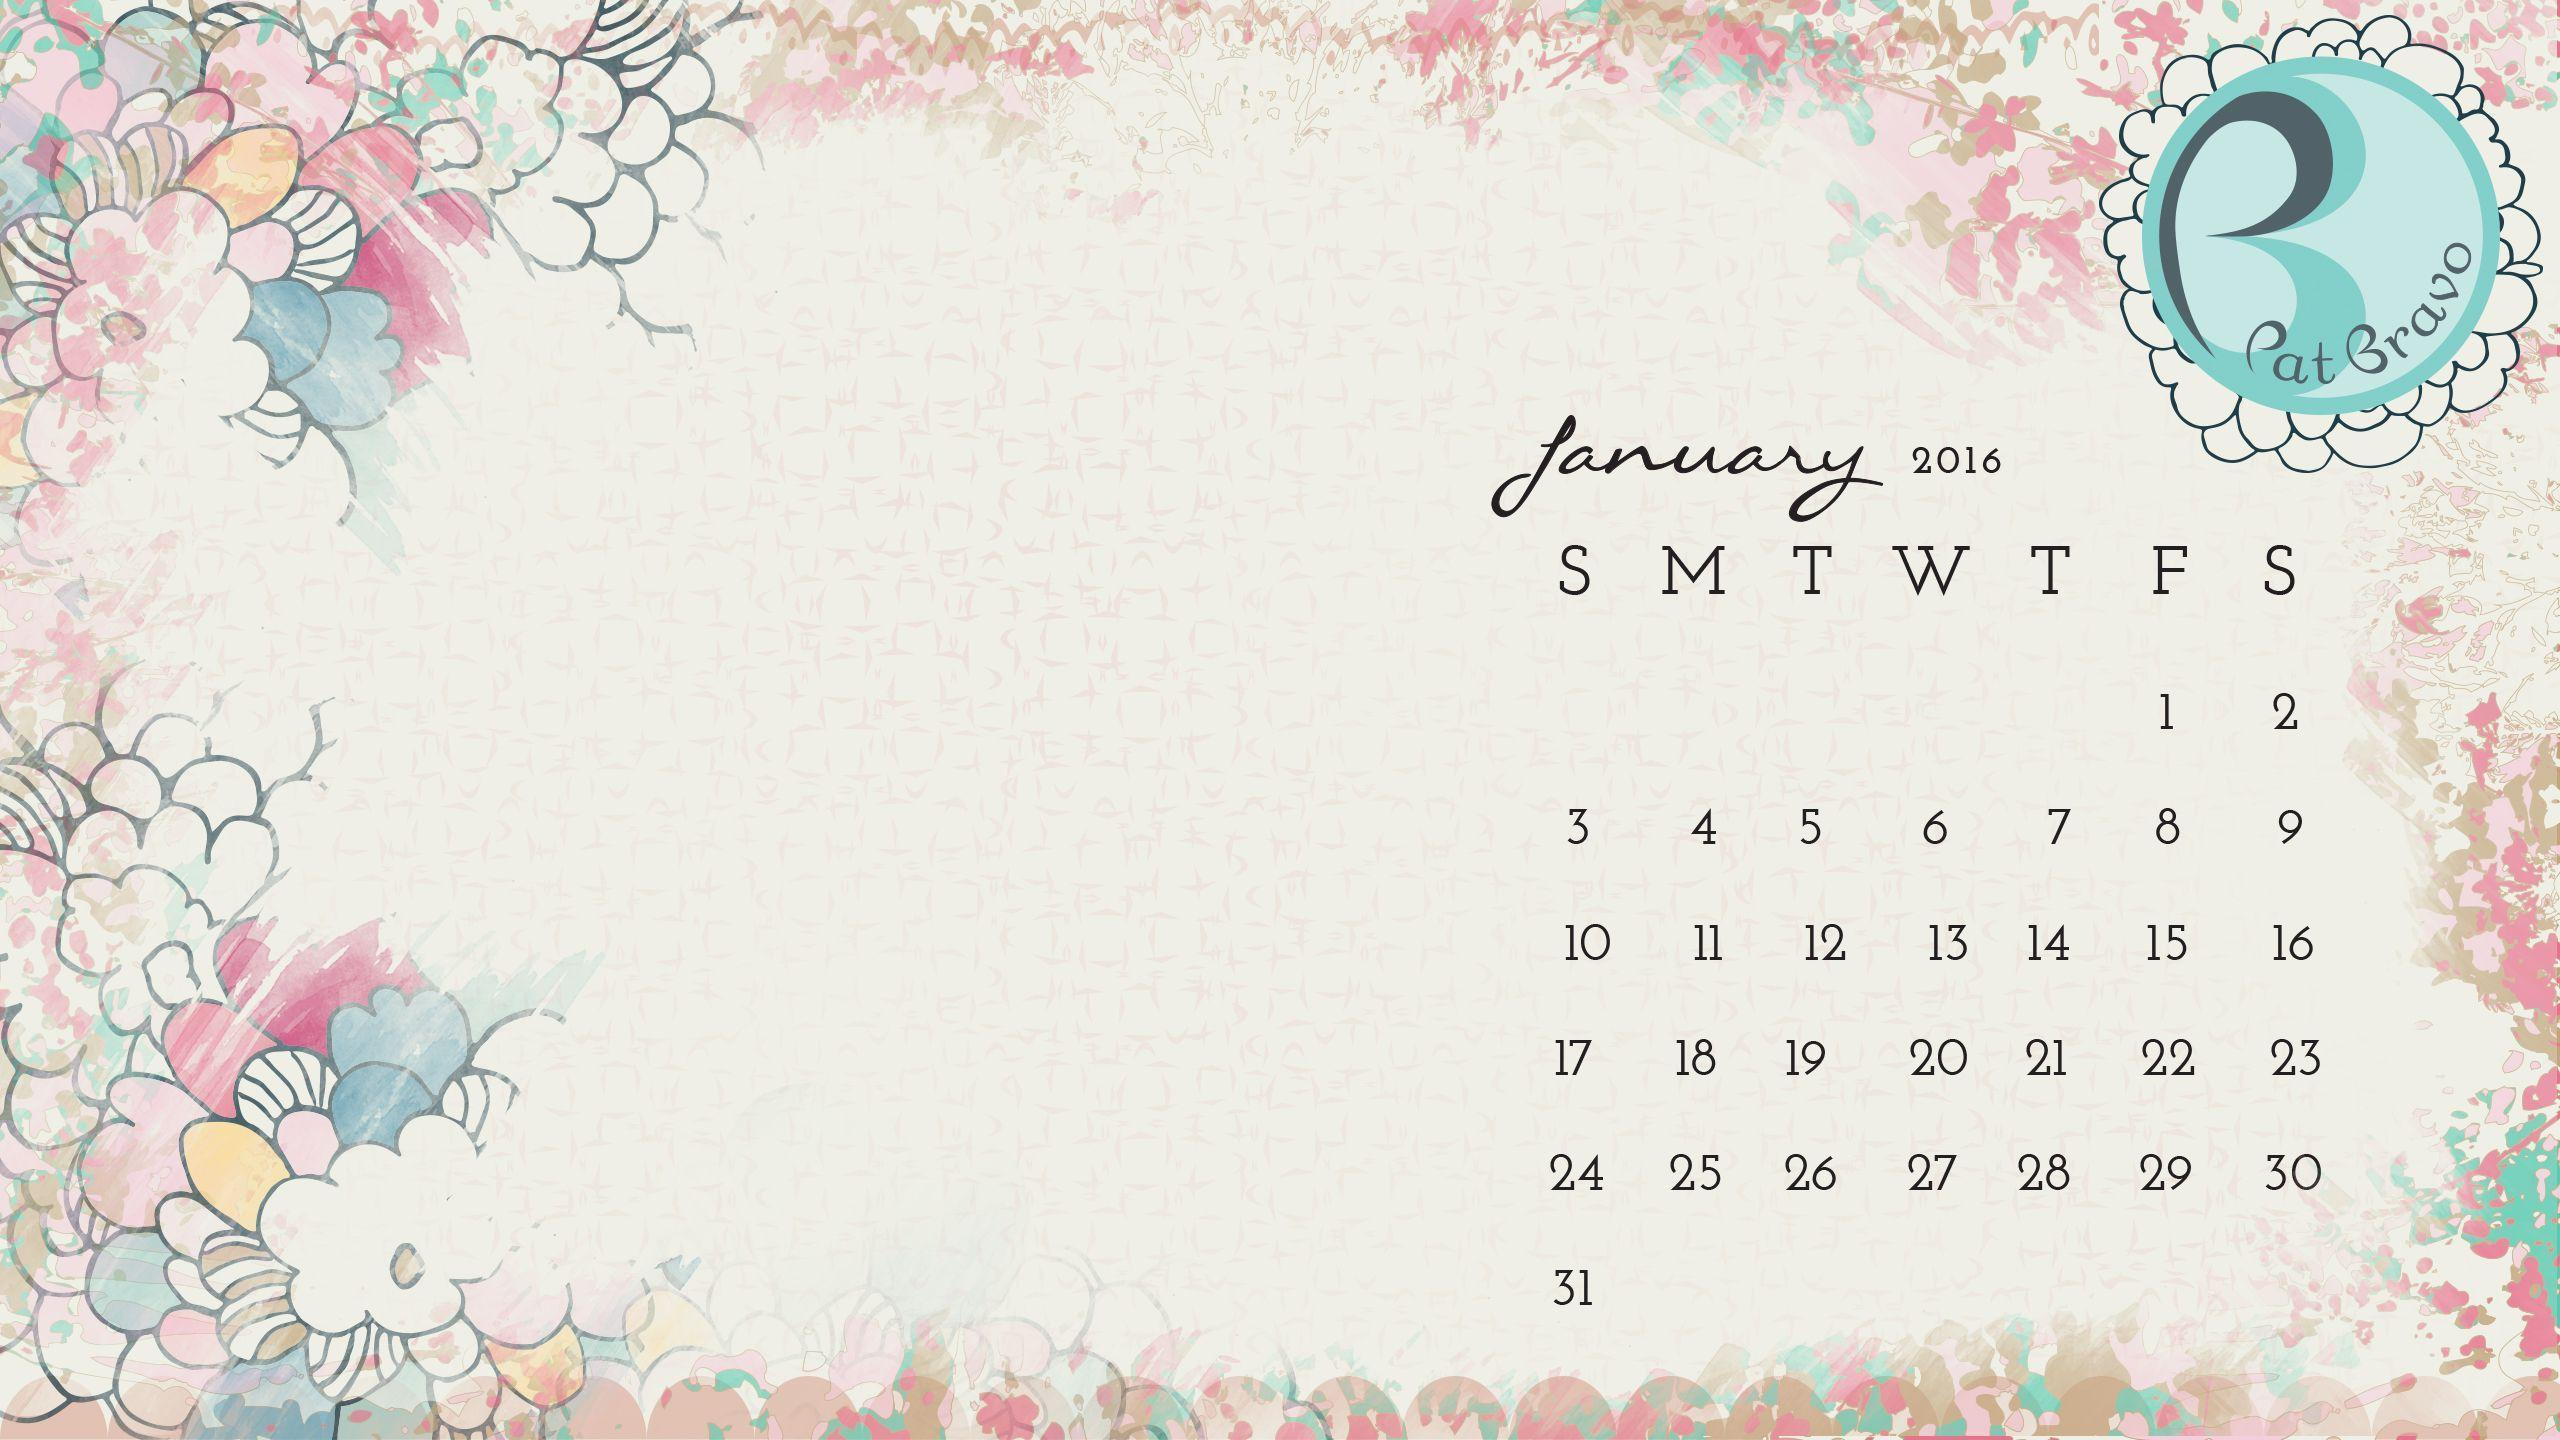 Calendar Background 2016 : Desktop wallpapers calendar january wallpaper cave